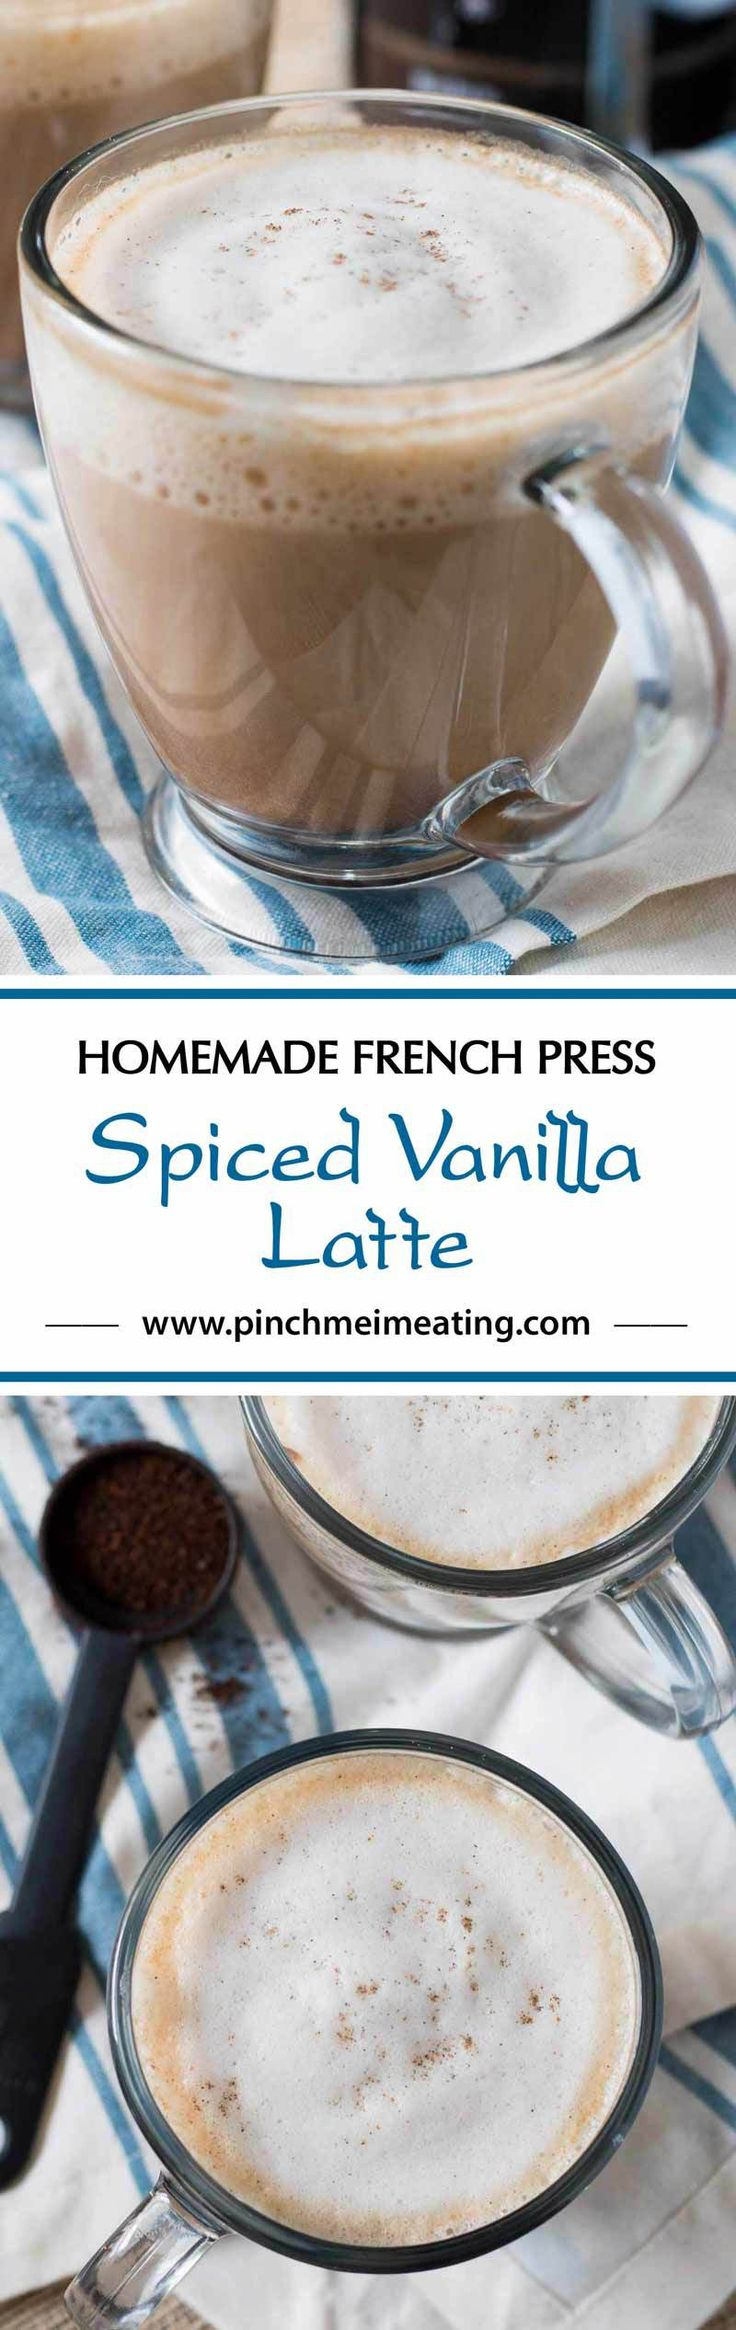 17 best ideas about french cafe menu on pinterest french coffee shop brickhouse cafe and. Black Bedroom Furniture Sets. Home Design Ideas